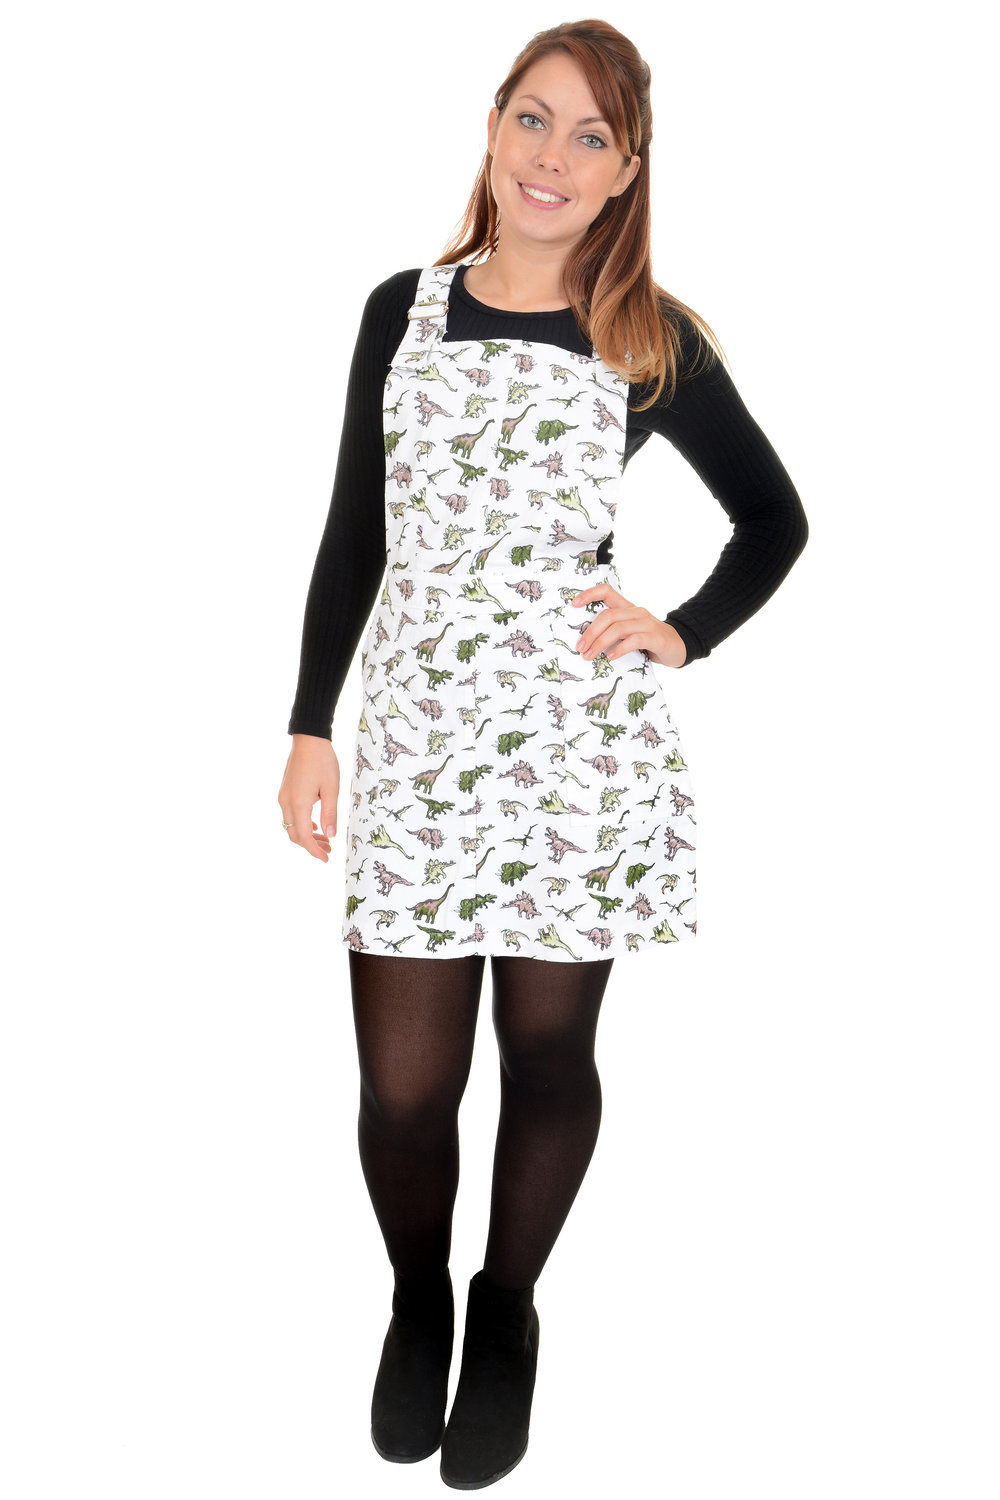 latest design wholesale sales latest COS Shop - Run & Fly Winter Ladies White Dinosaur Print ...